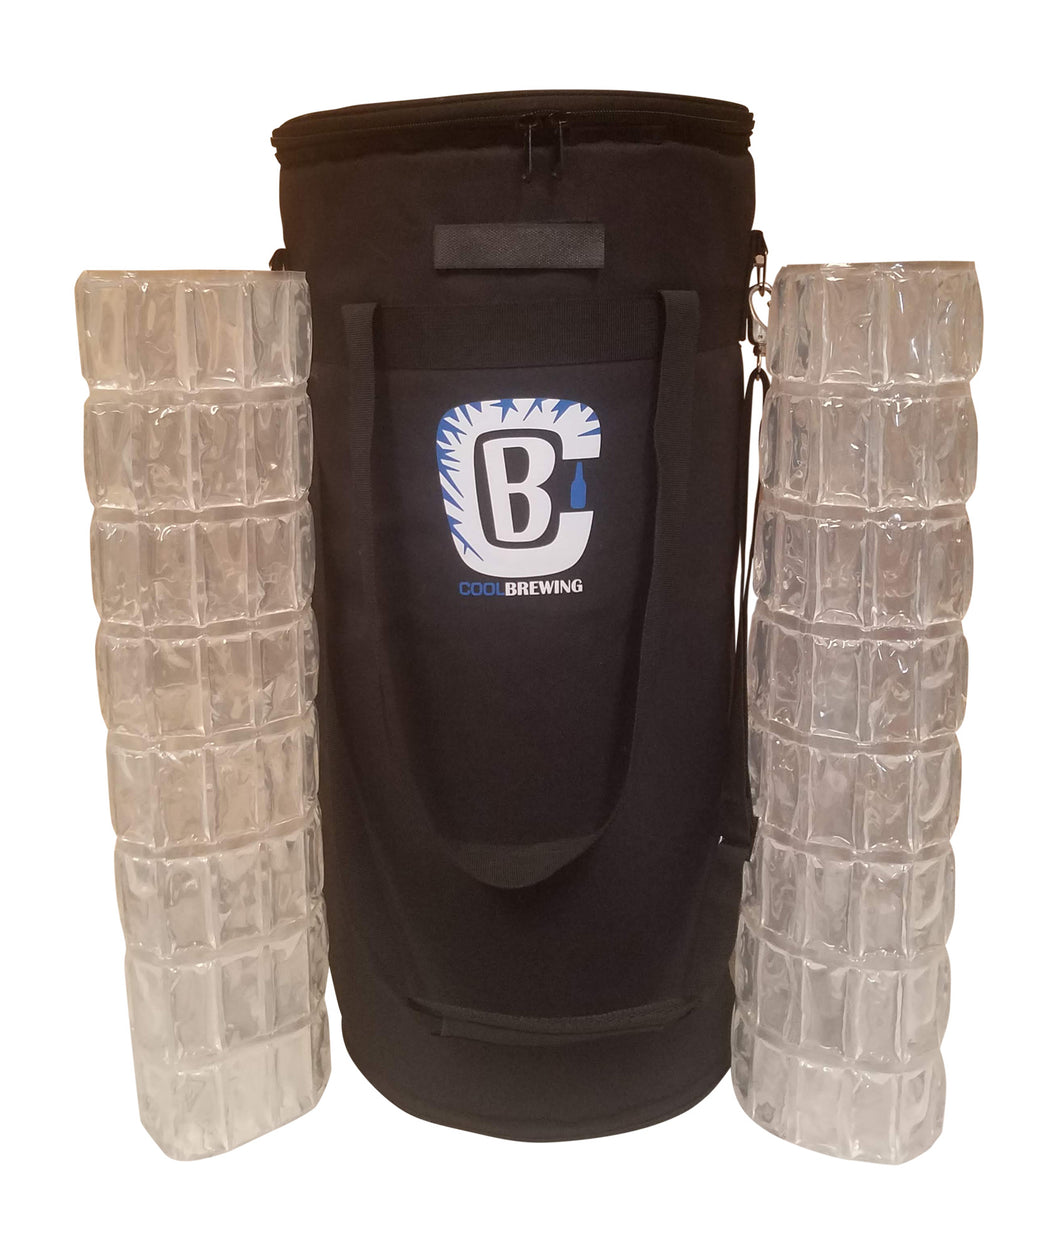 CoolBrewCorny 5G 3.0 Keg Cooler BUNDLE with 2 IMPROVED Ice Wraps!